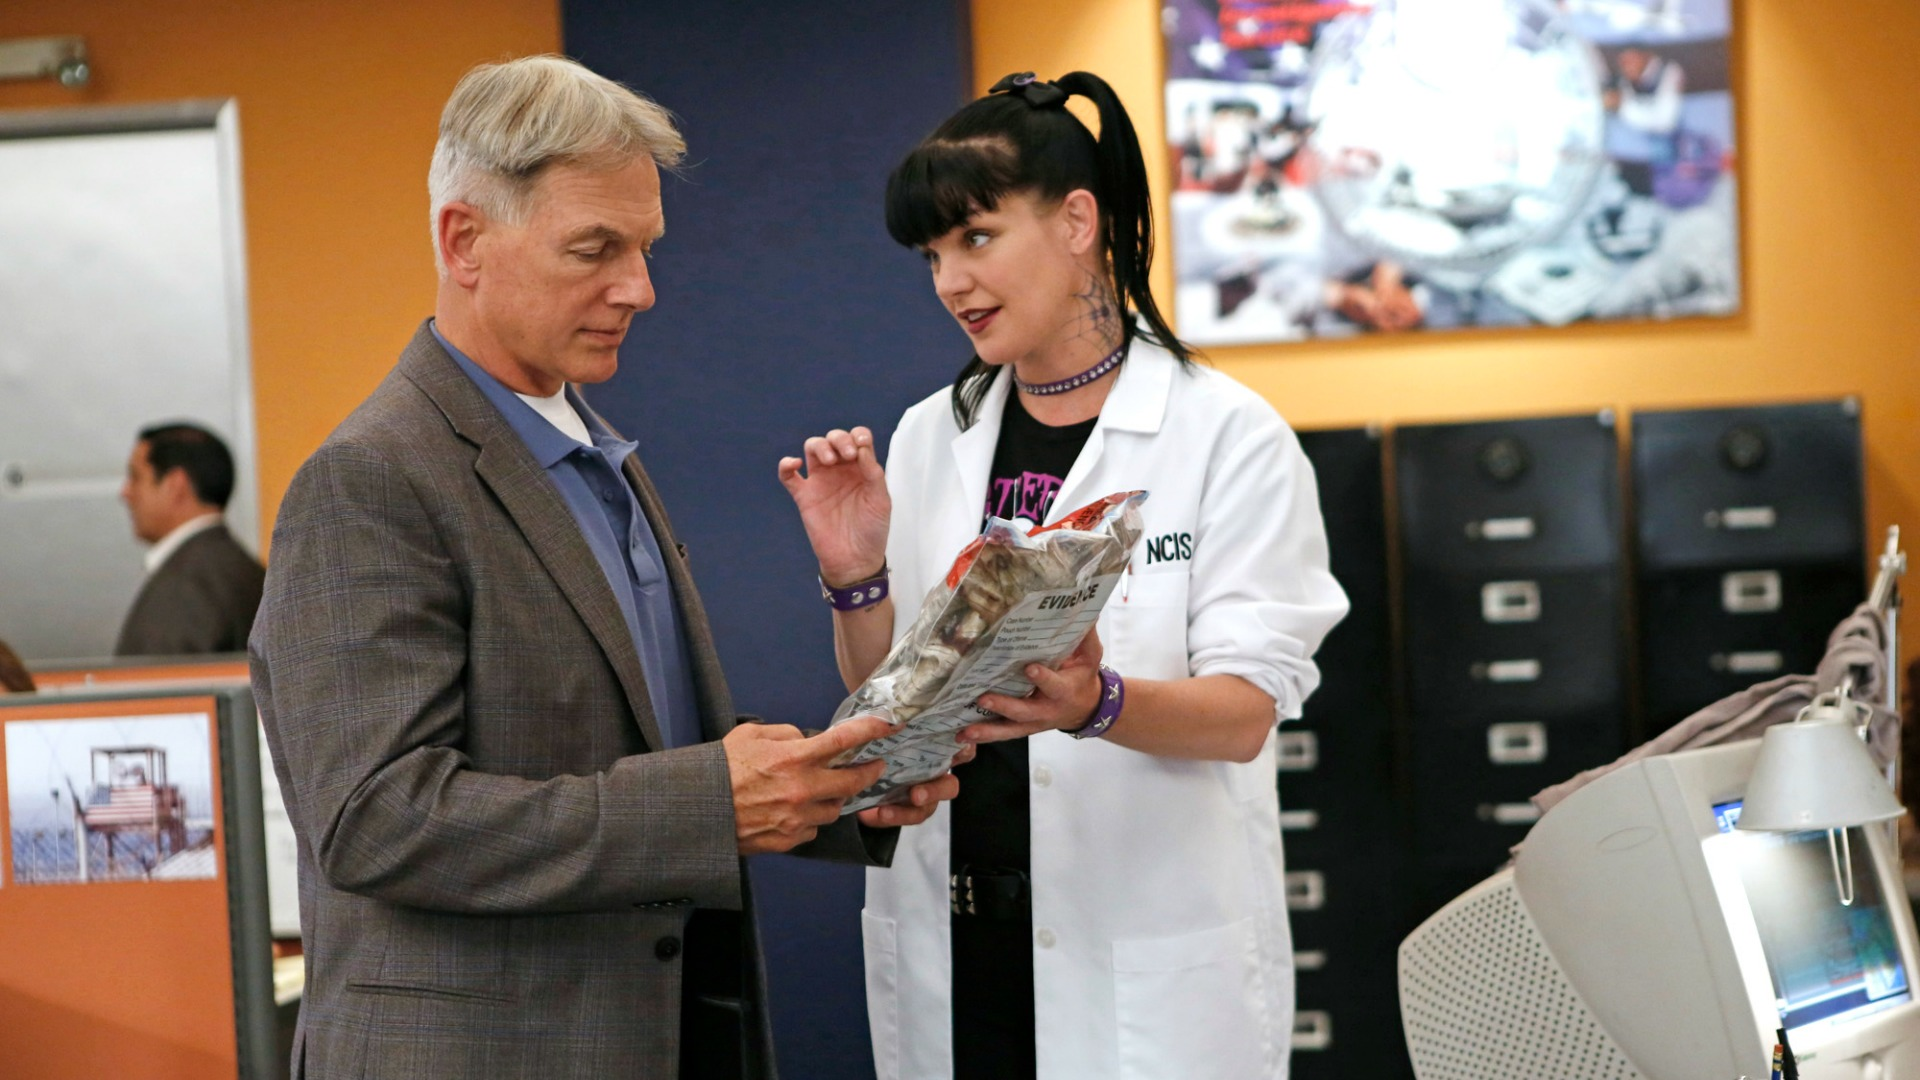 graphic relating to Ncis Gibbs Rules Printable List identified as Gibbs Tips: The Comprehensive Record Towards NCIS - NCIS Shots